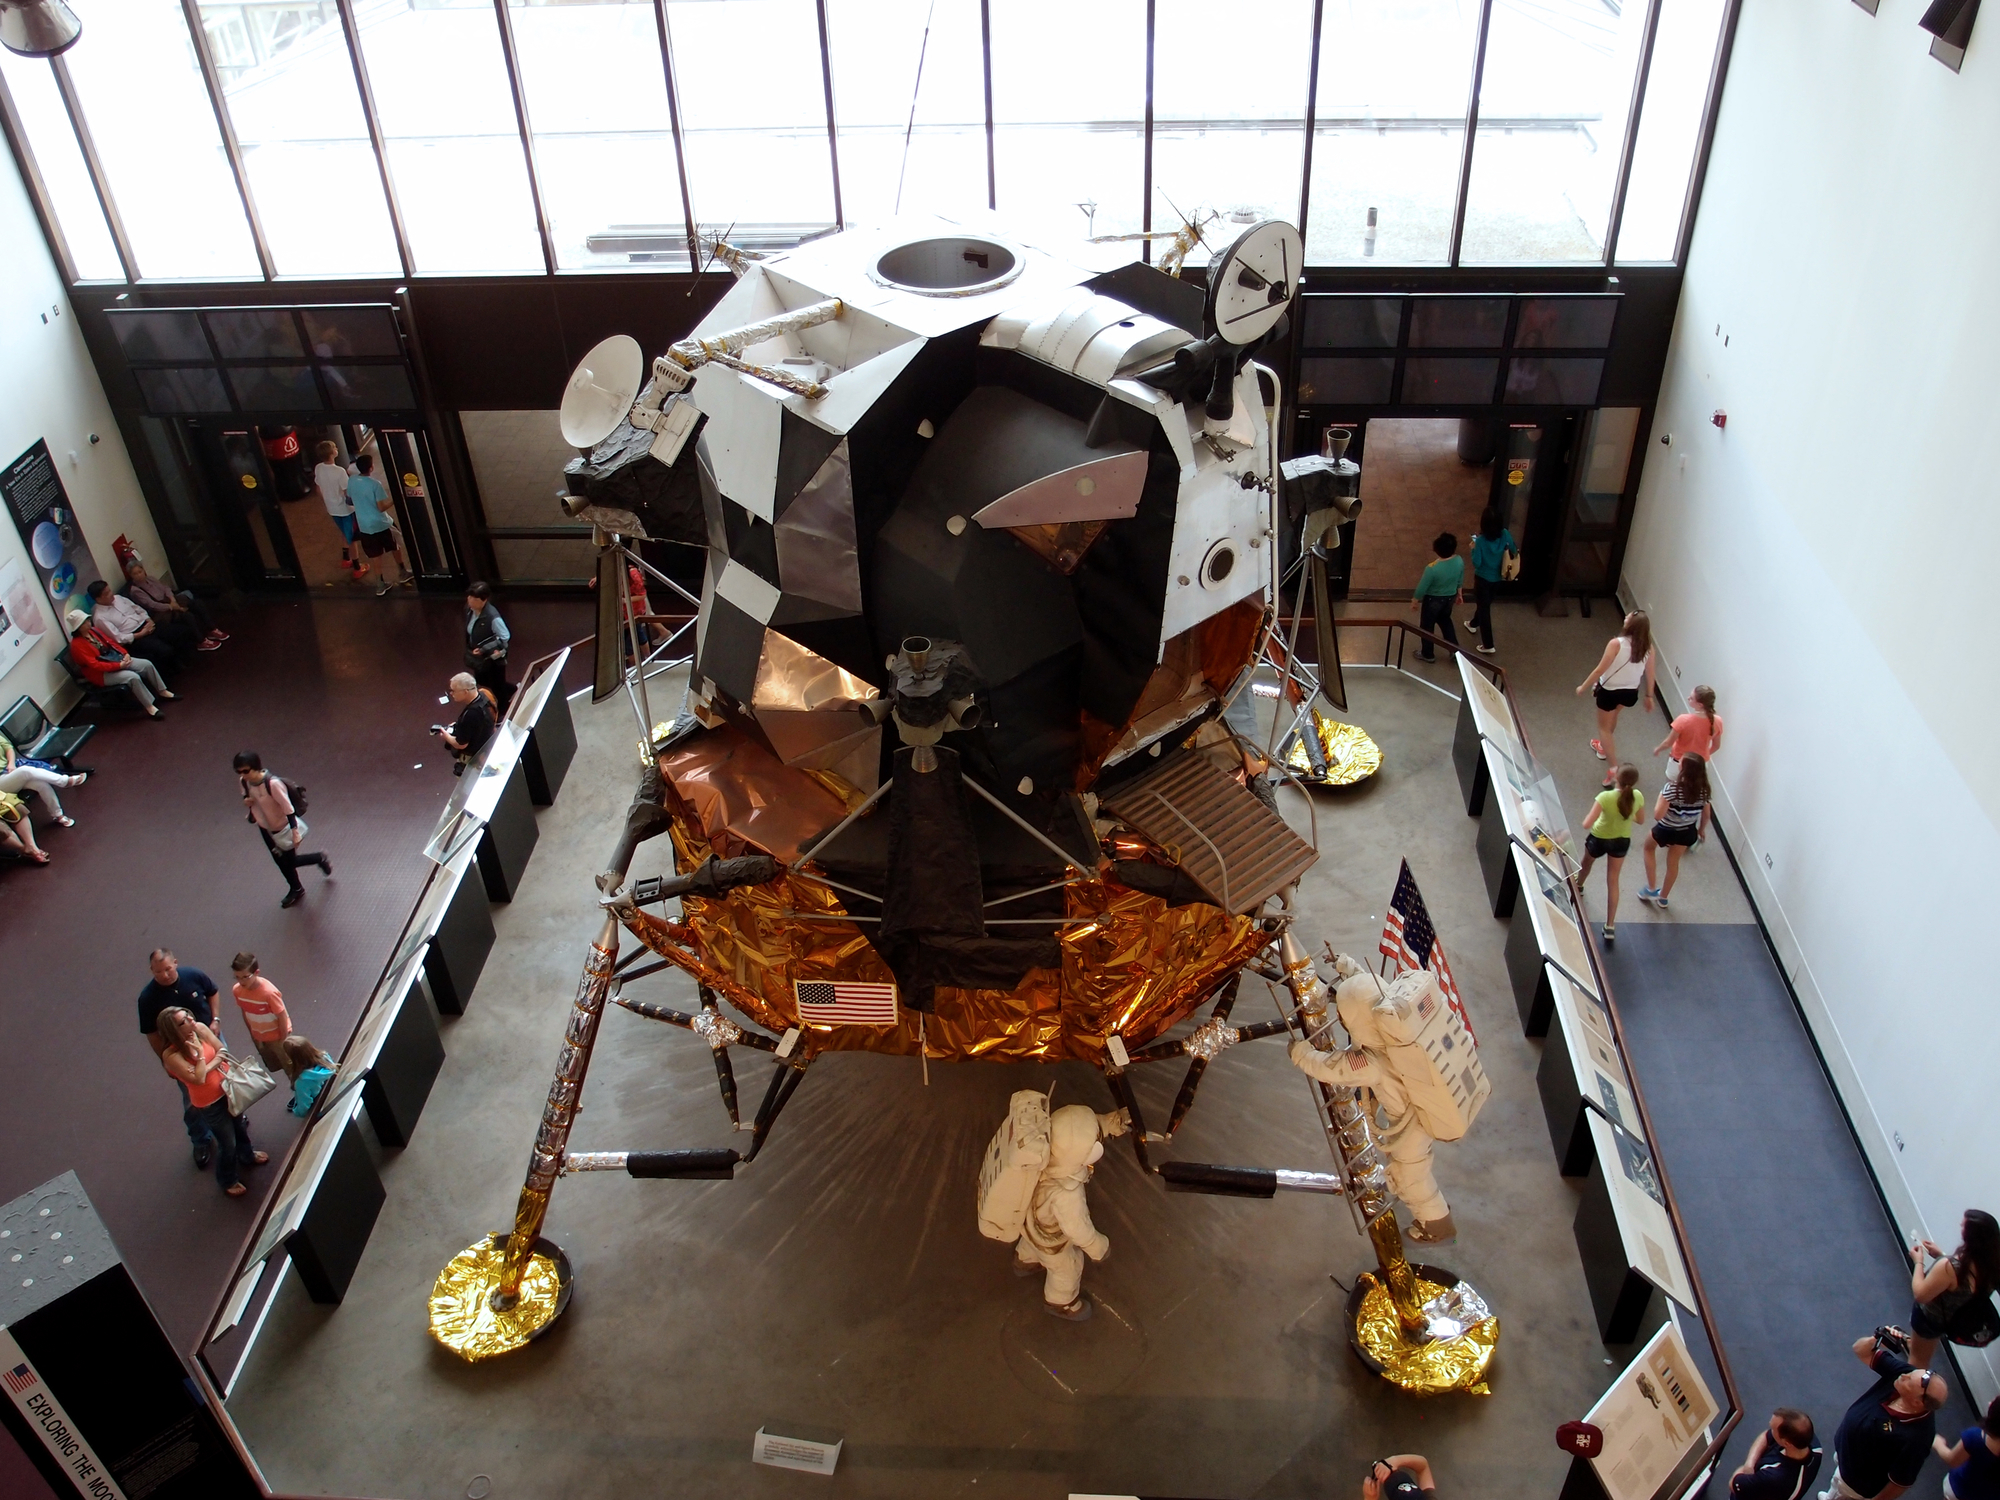 National Air and Space Museum Lunary Module